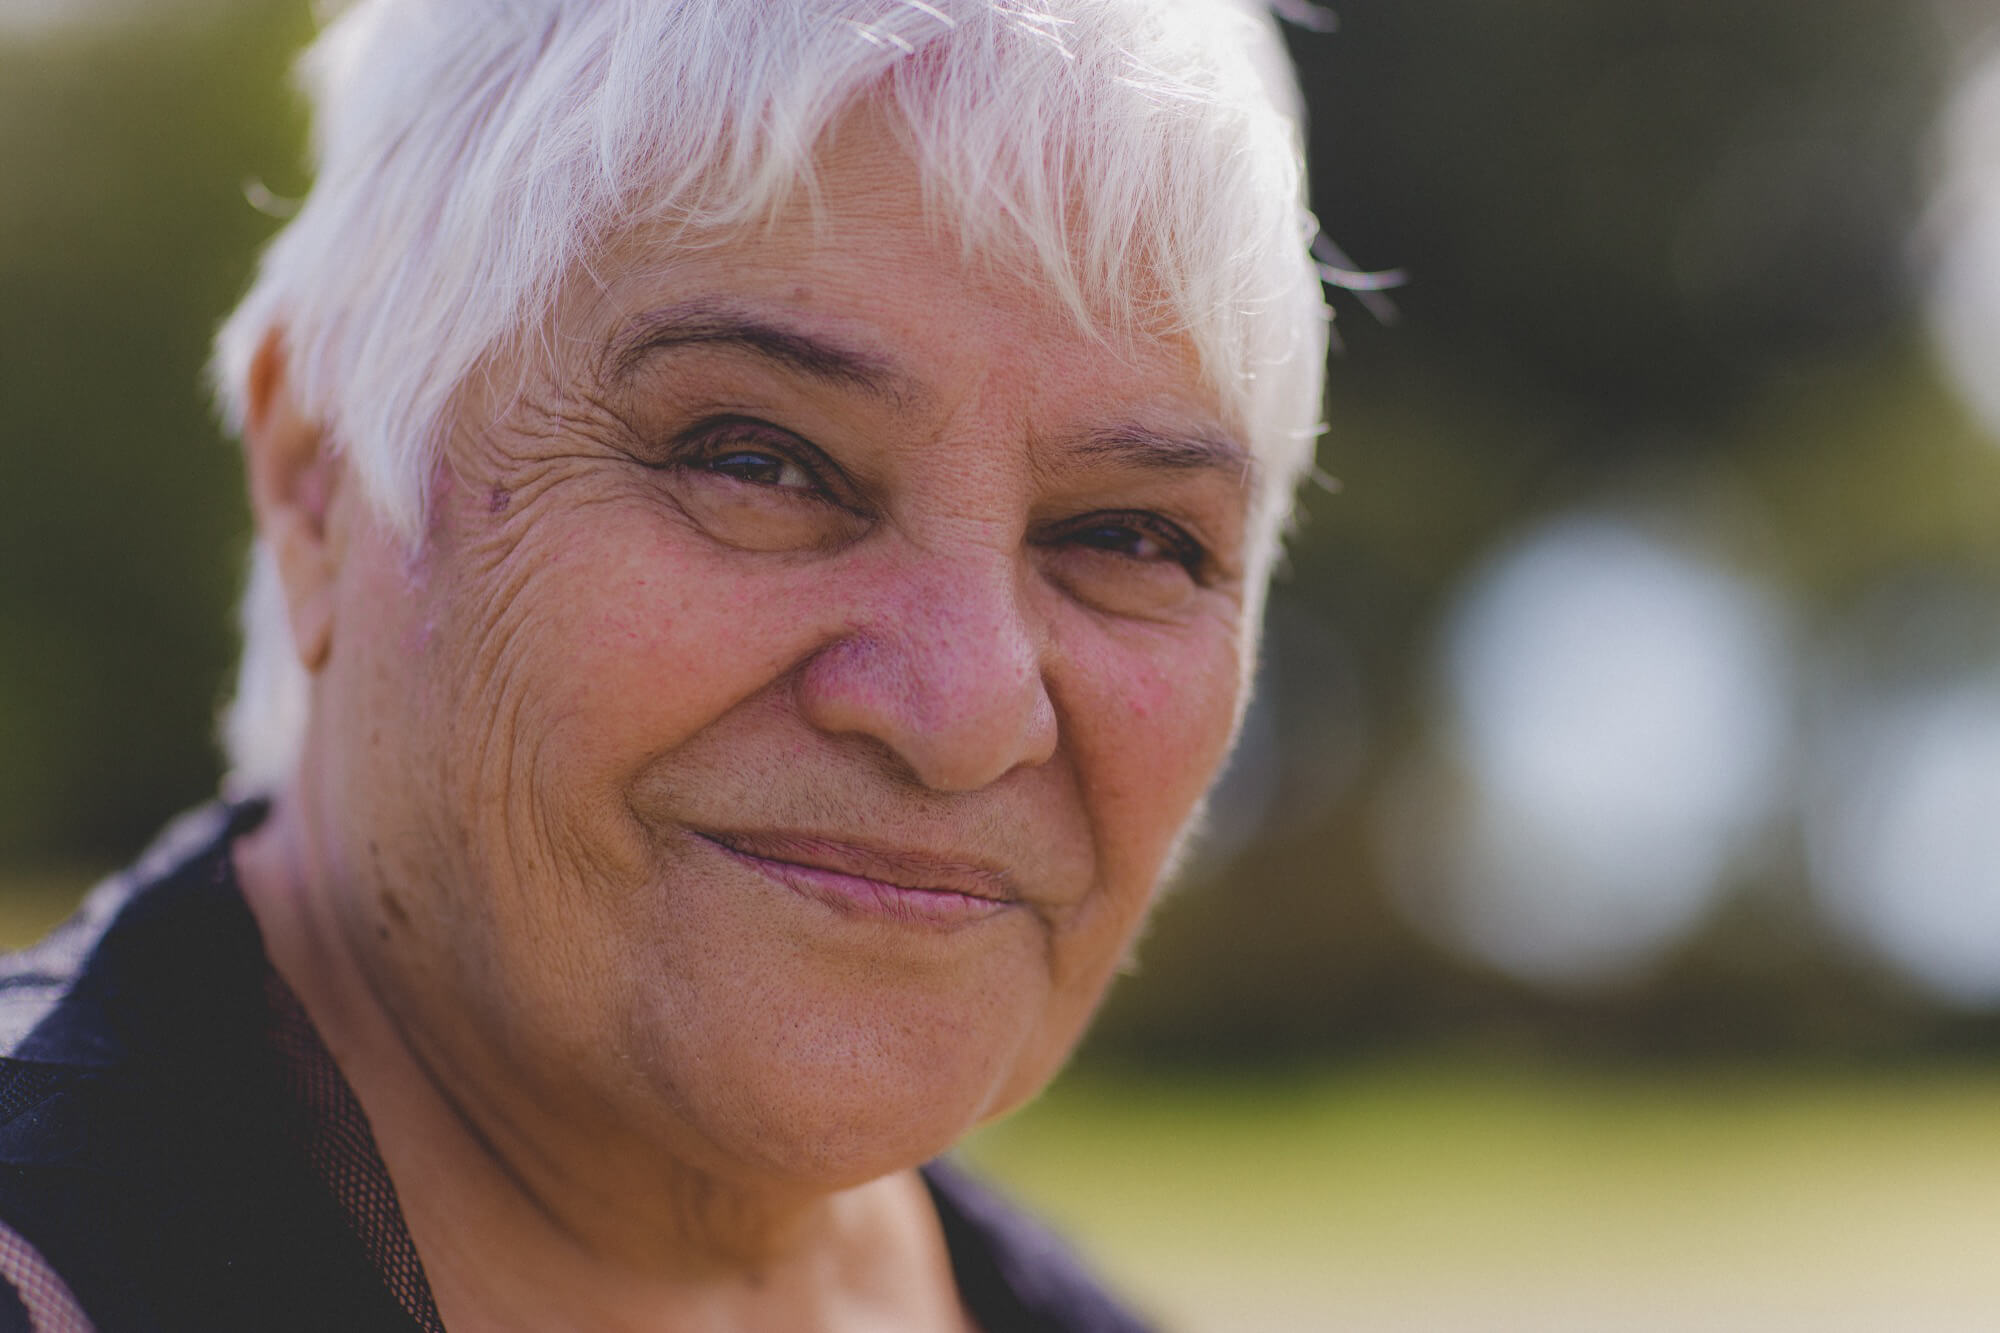 DefendNZ-is-rallying-Kiwis-against-euthanasia-DefendNZ-Defend-New-Zealand-NZ-Web-Assisted-Sucicide-Euthanasia-End-Of-Life-Choice-Bill-David-Seymour.jpg